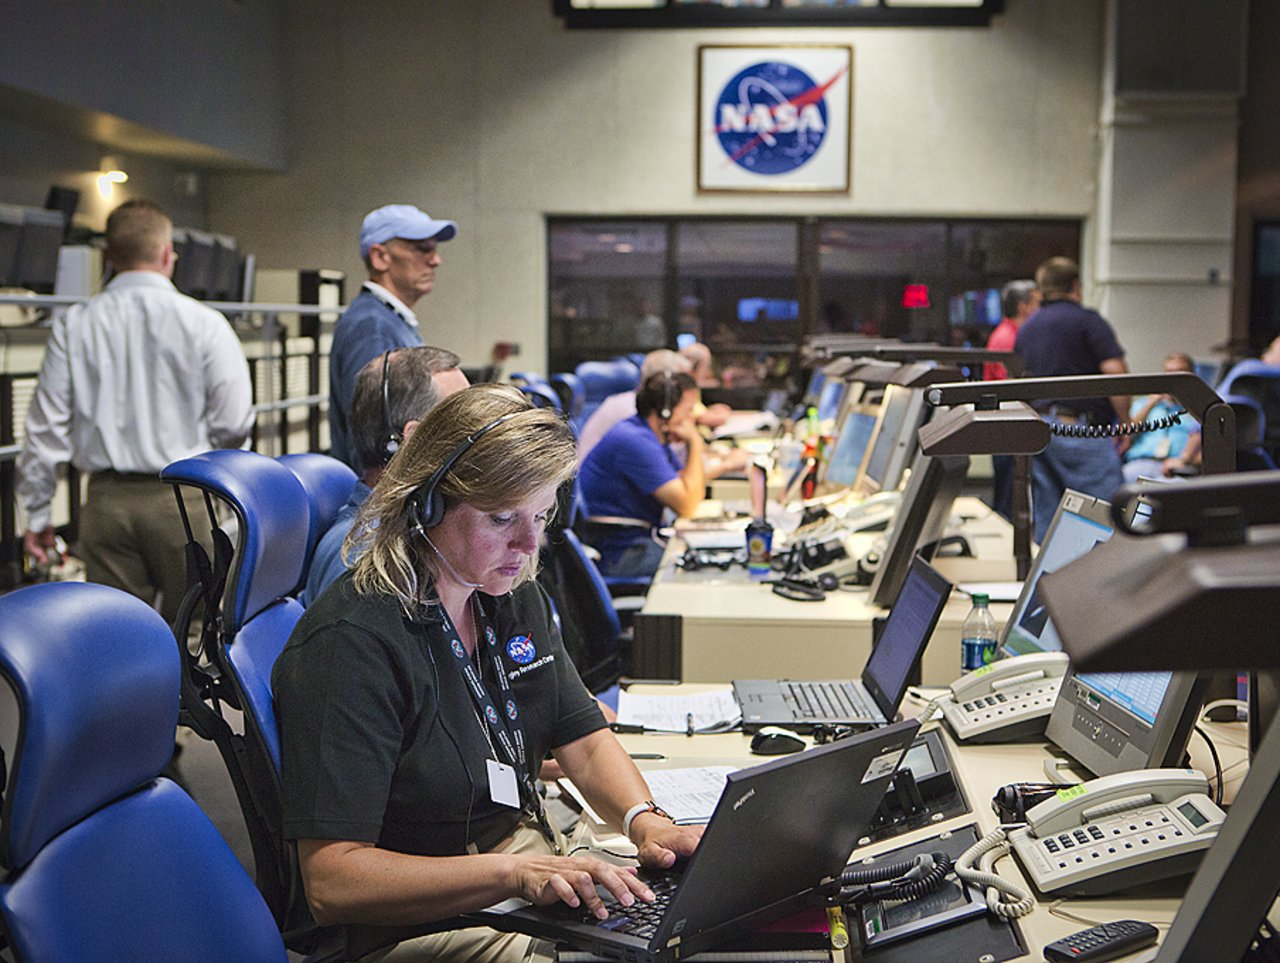 nasa small business office - 904×680